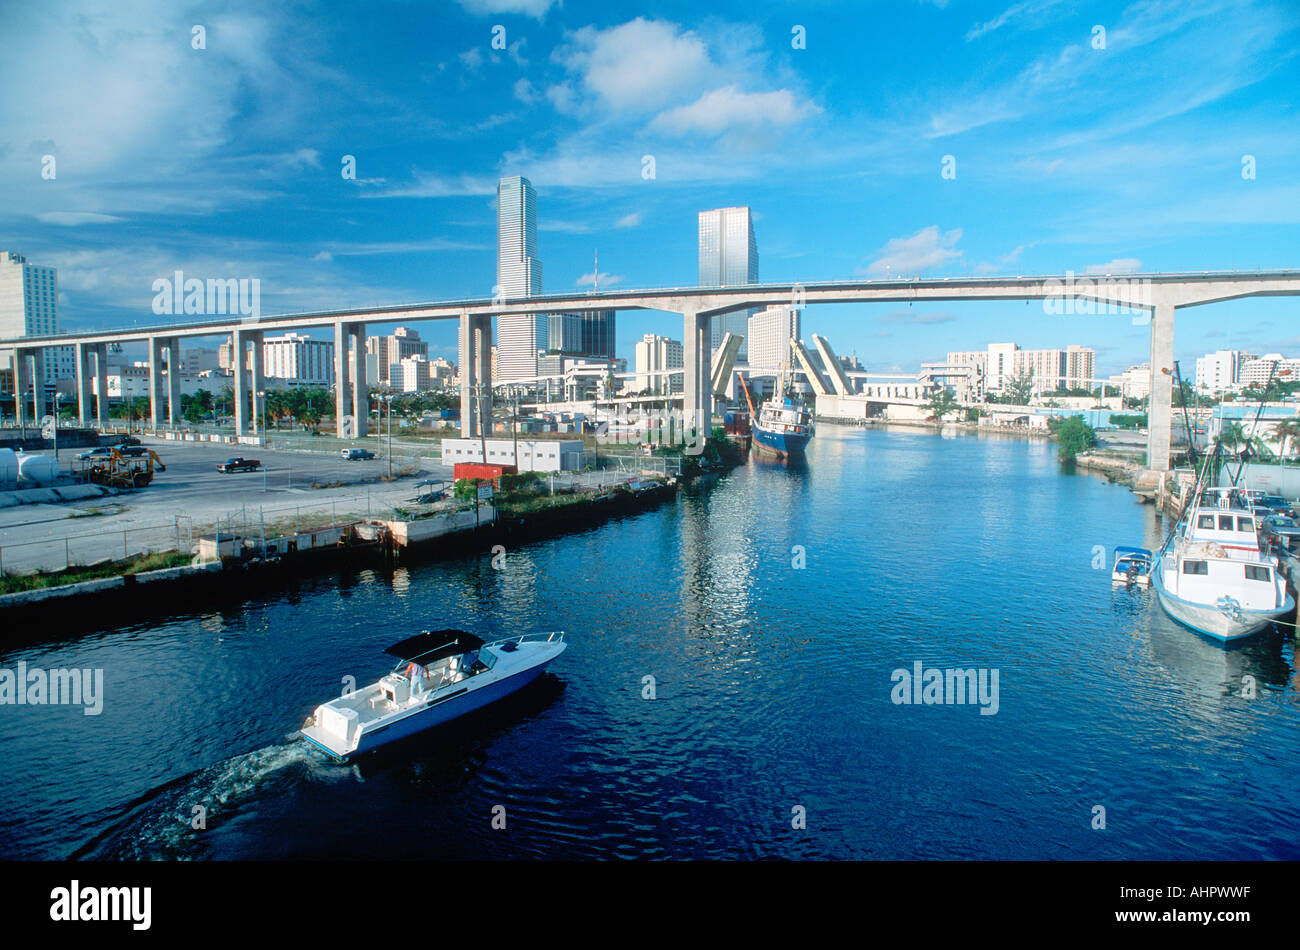 Waterway underneath metro rail line with skyline in background in Miami Florida - Stock Image